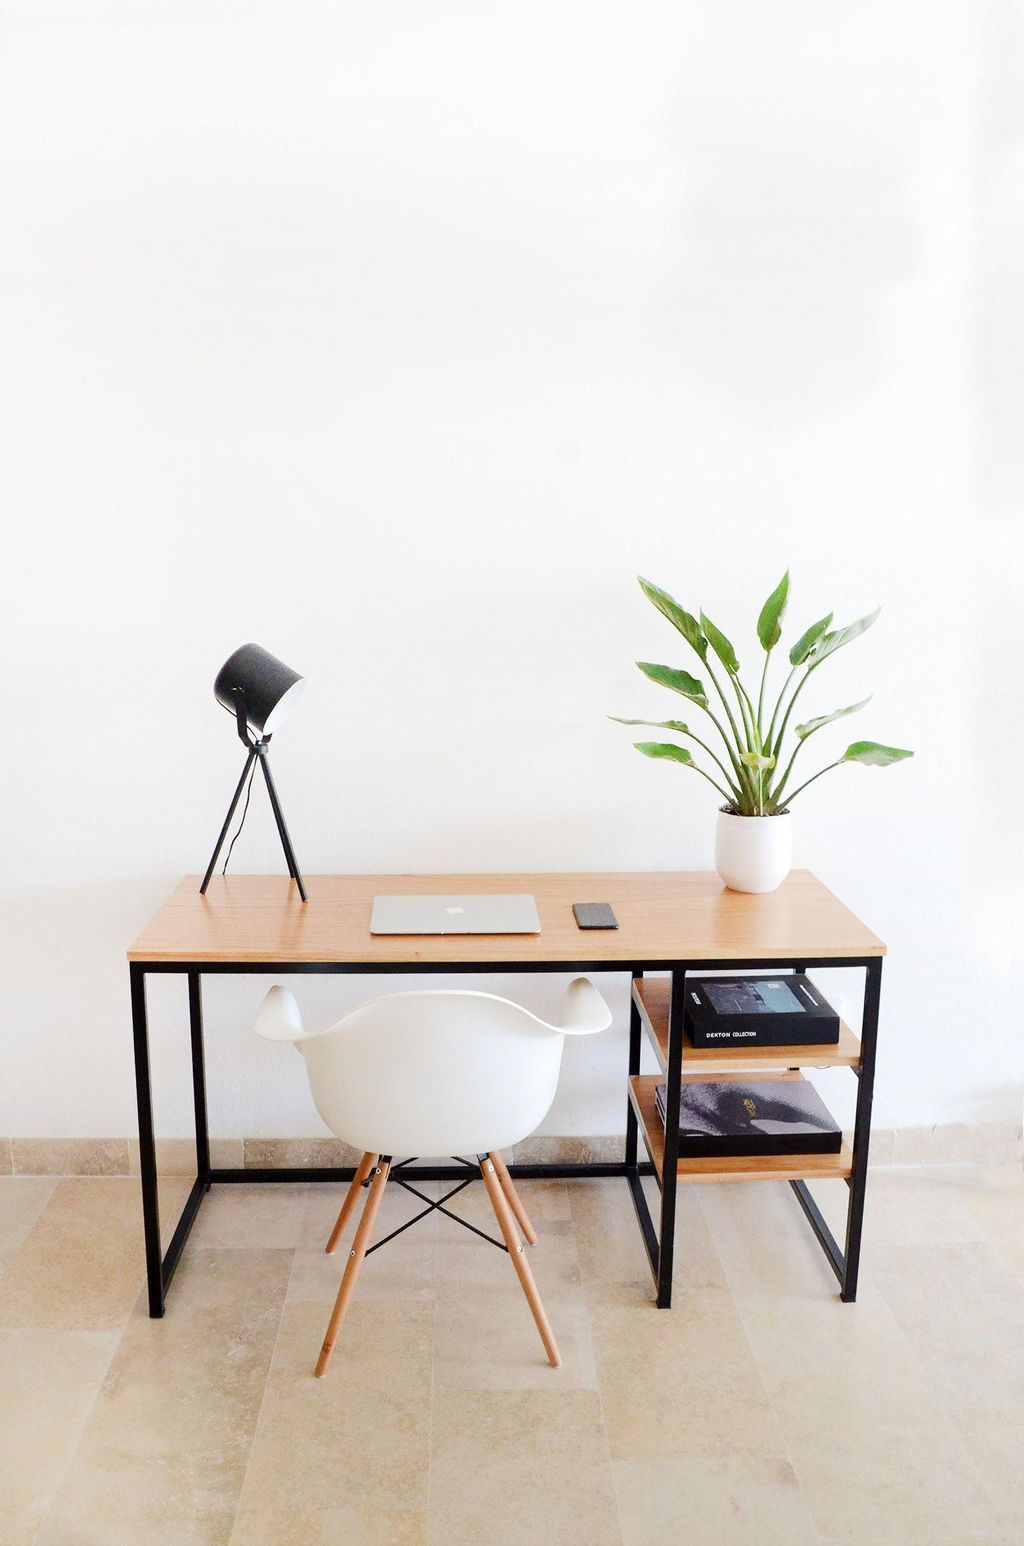 46 Impressive Diy Home Office Table Ideas For Create Comfortable Work In 2020 Home Office Table Home Office Furniture Industrial Home Design